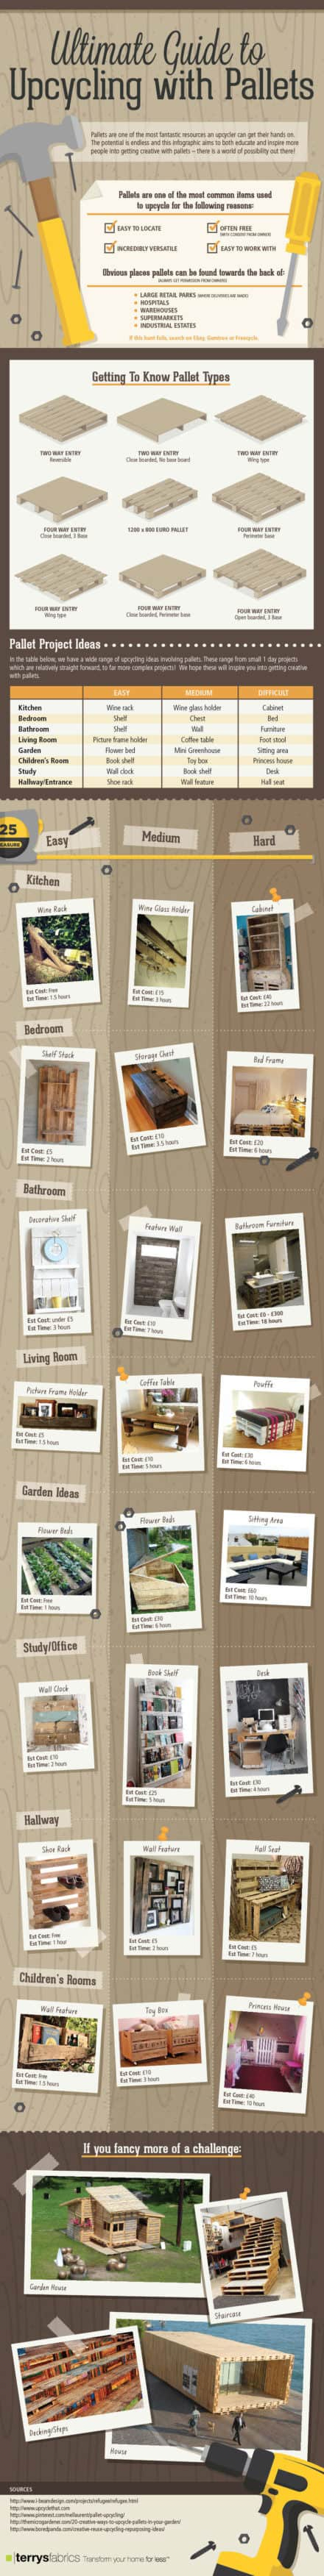 Ultimate Guide To Upcycling Pallets